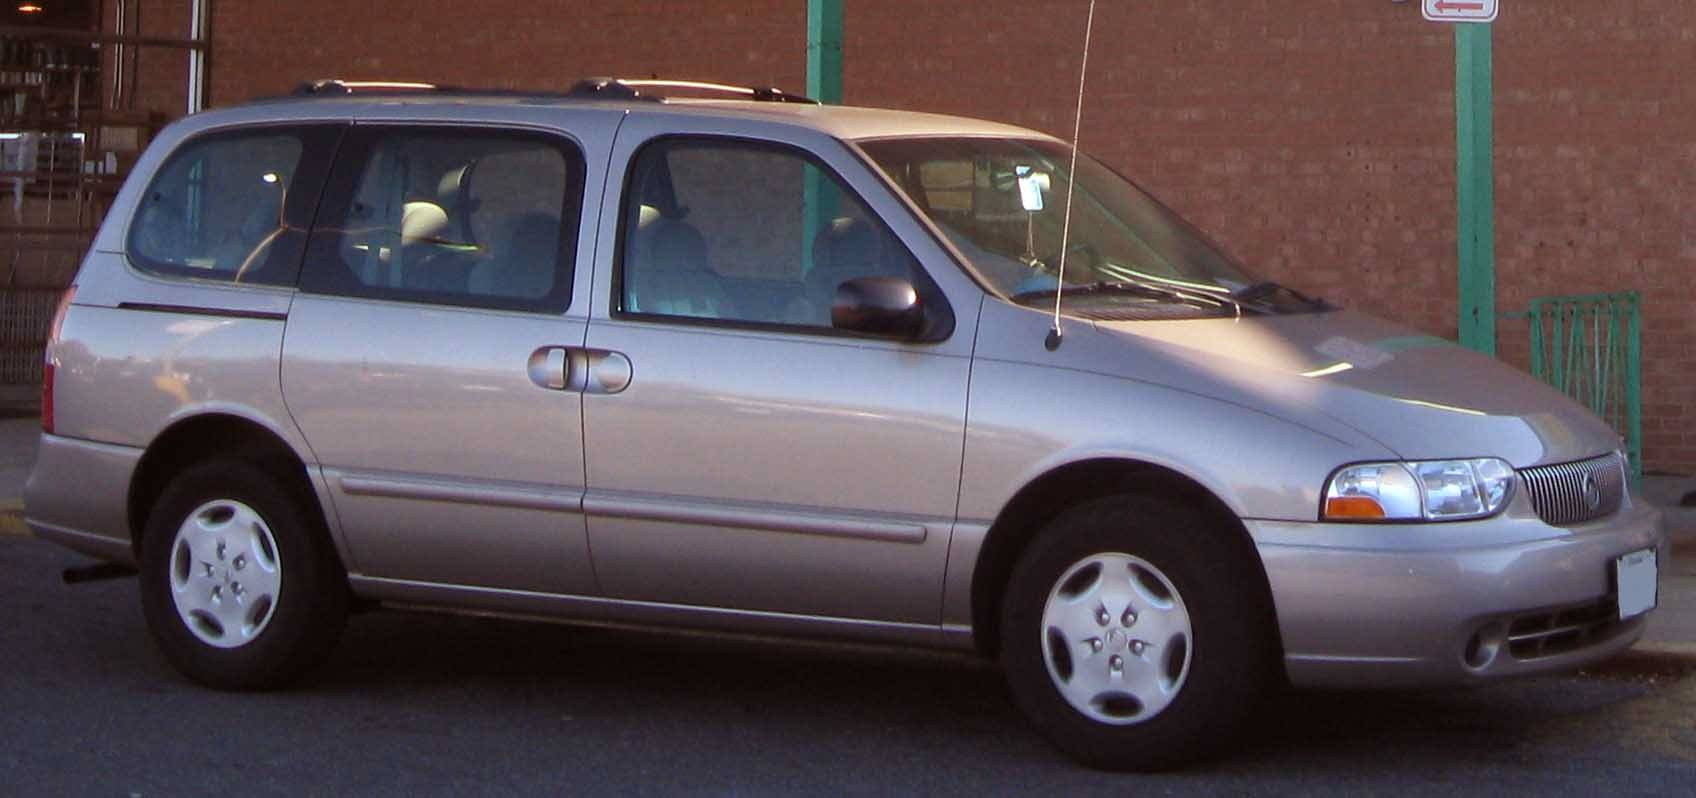 2002 Mercury Villager 1999